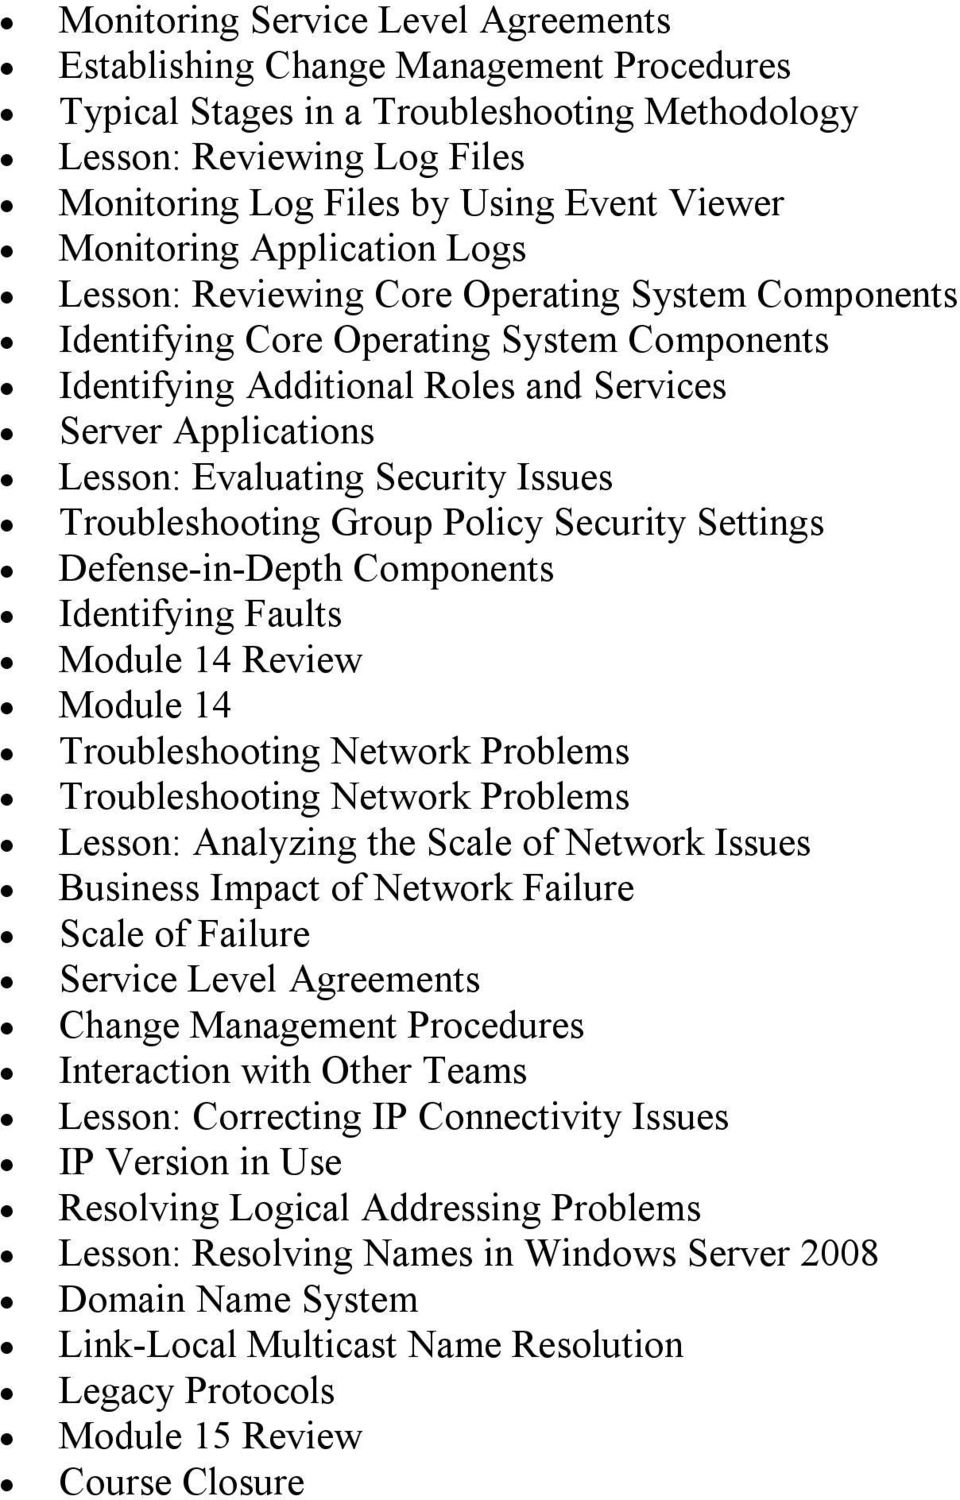 Evaluating Security Issues Troubleshooting Group Policy Security Settings Defense in Depth Components Identifying Faults Module 14 Review Module 14 Troubleshooting Network Problems Troubleshooting